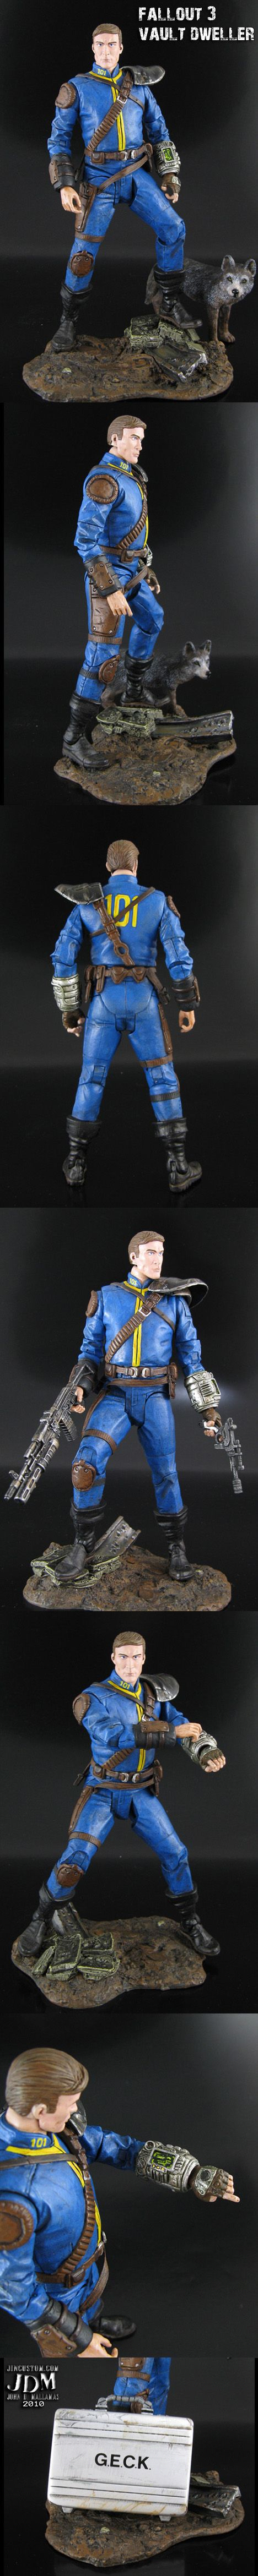 Fallout 3 Lone Wanderer Action Figure?...SHUT UP AND TAKE MY BOTTLECAPS...